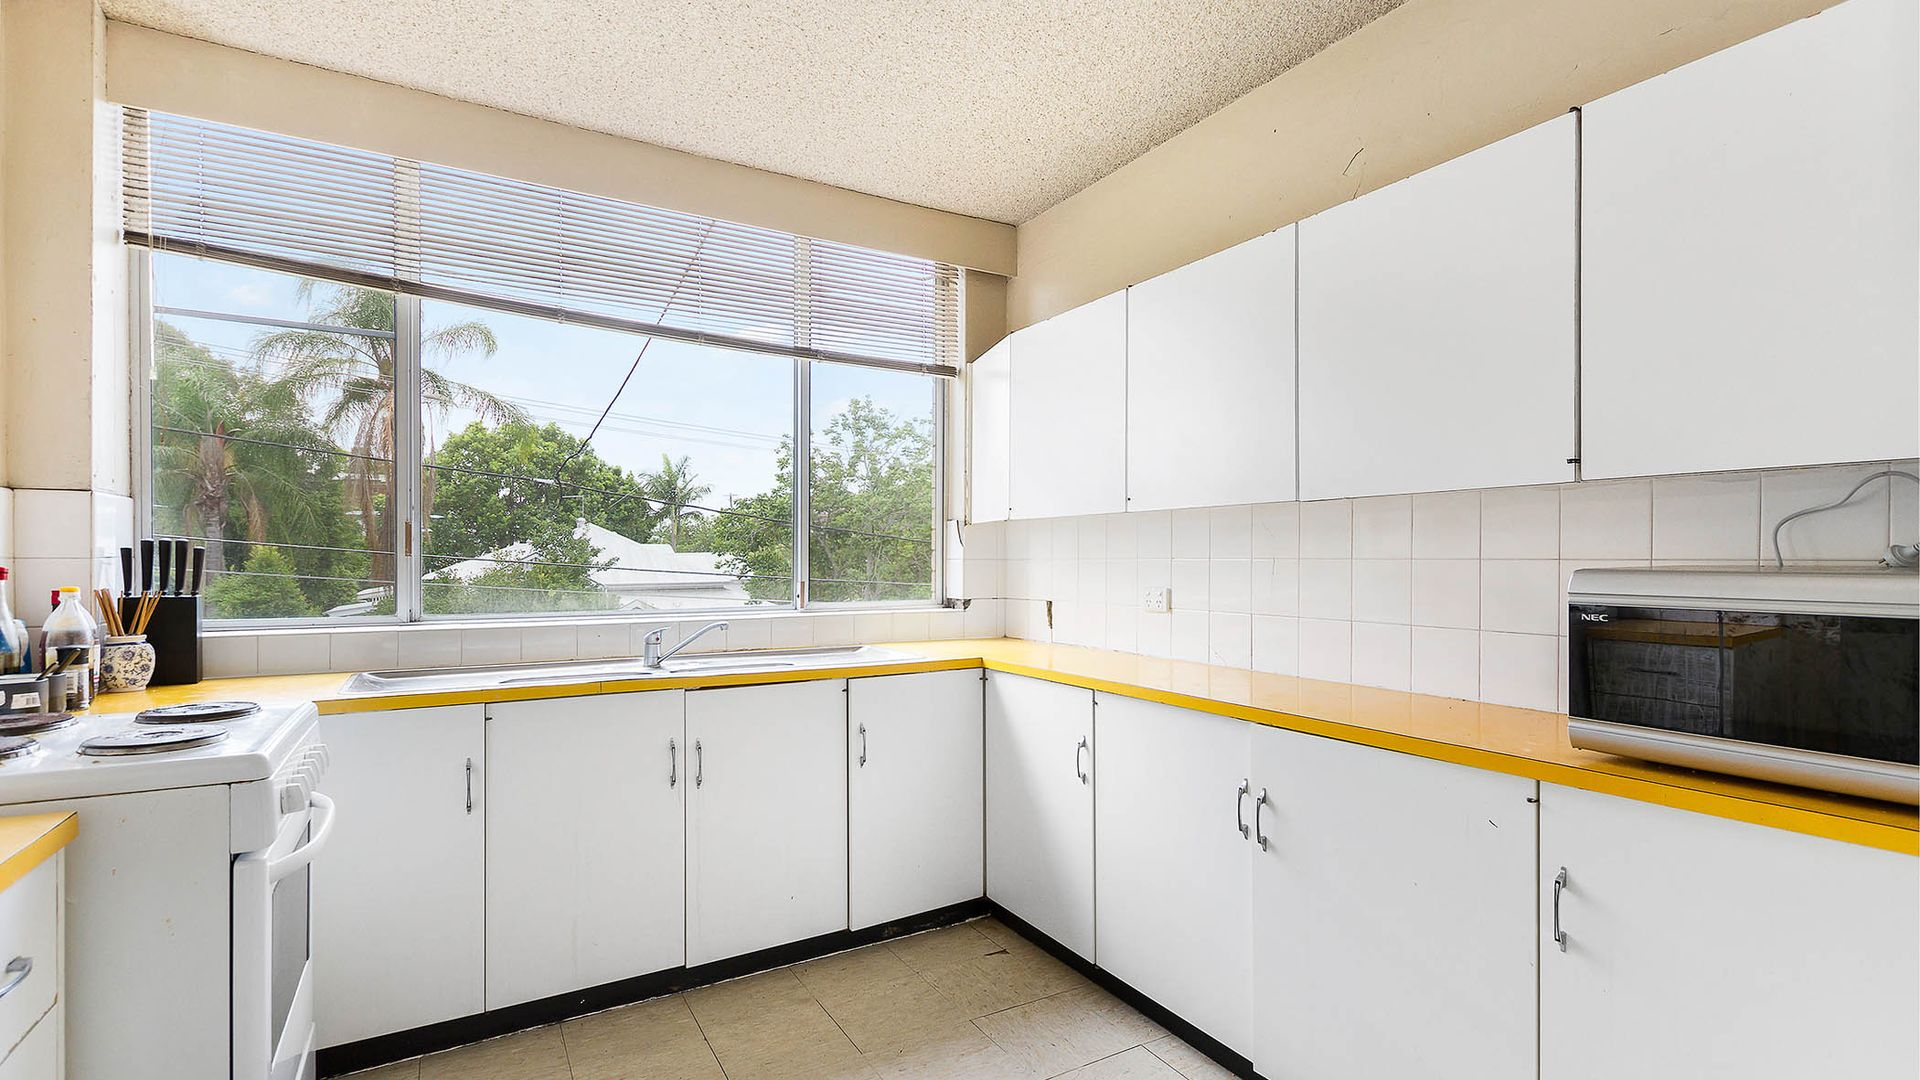 1/74 Maryvale Street, Toowong QLD 4066, Image 2